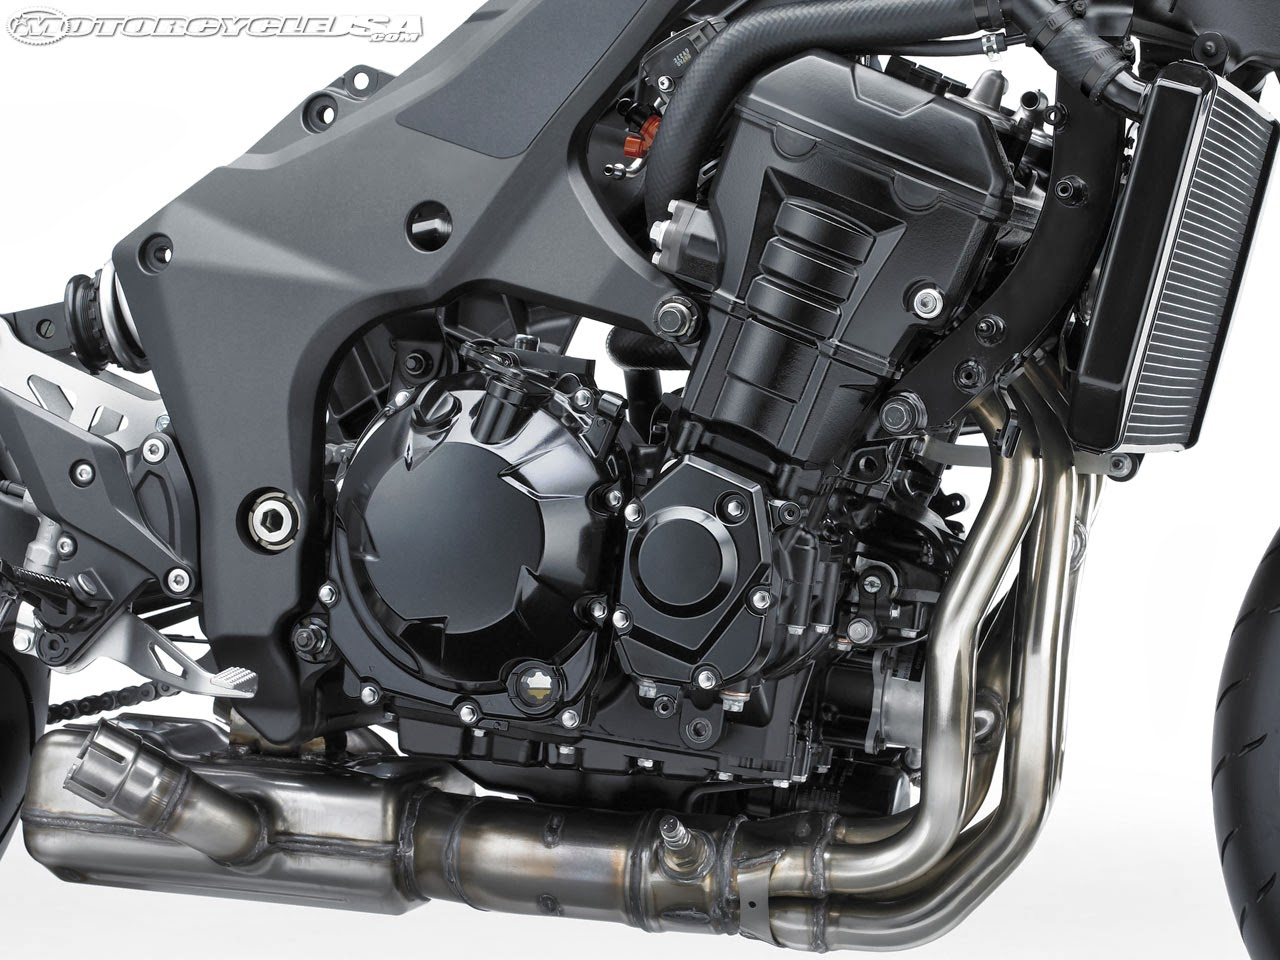 Life With A Superbike: 60. How the engine works.